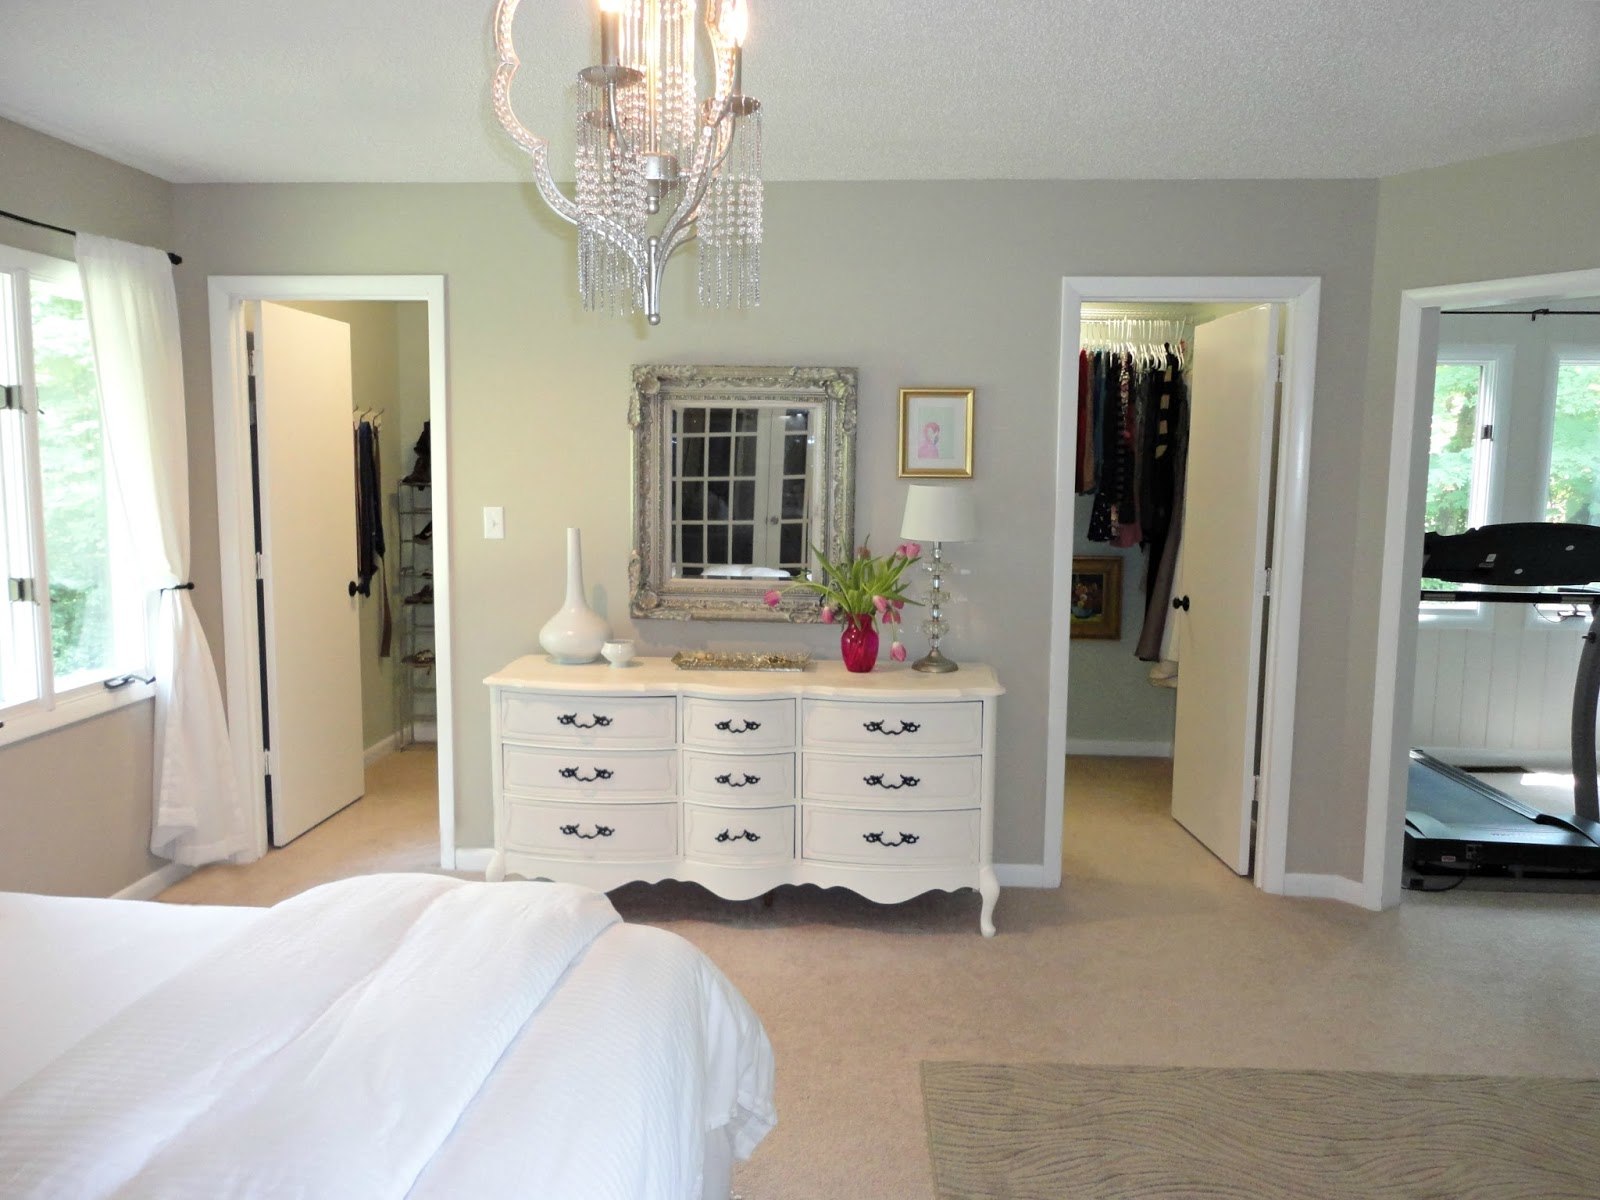 Walk in closet designs for a master bedroom a unique for Master bathroom designs with walk in closets